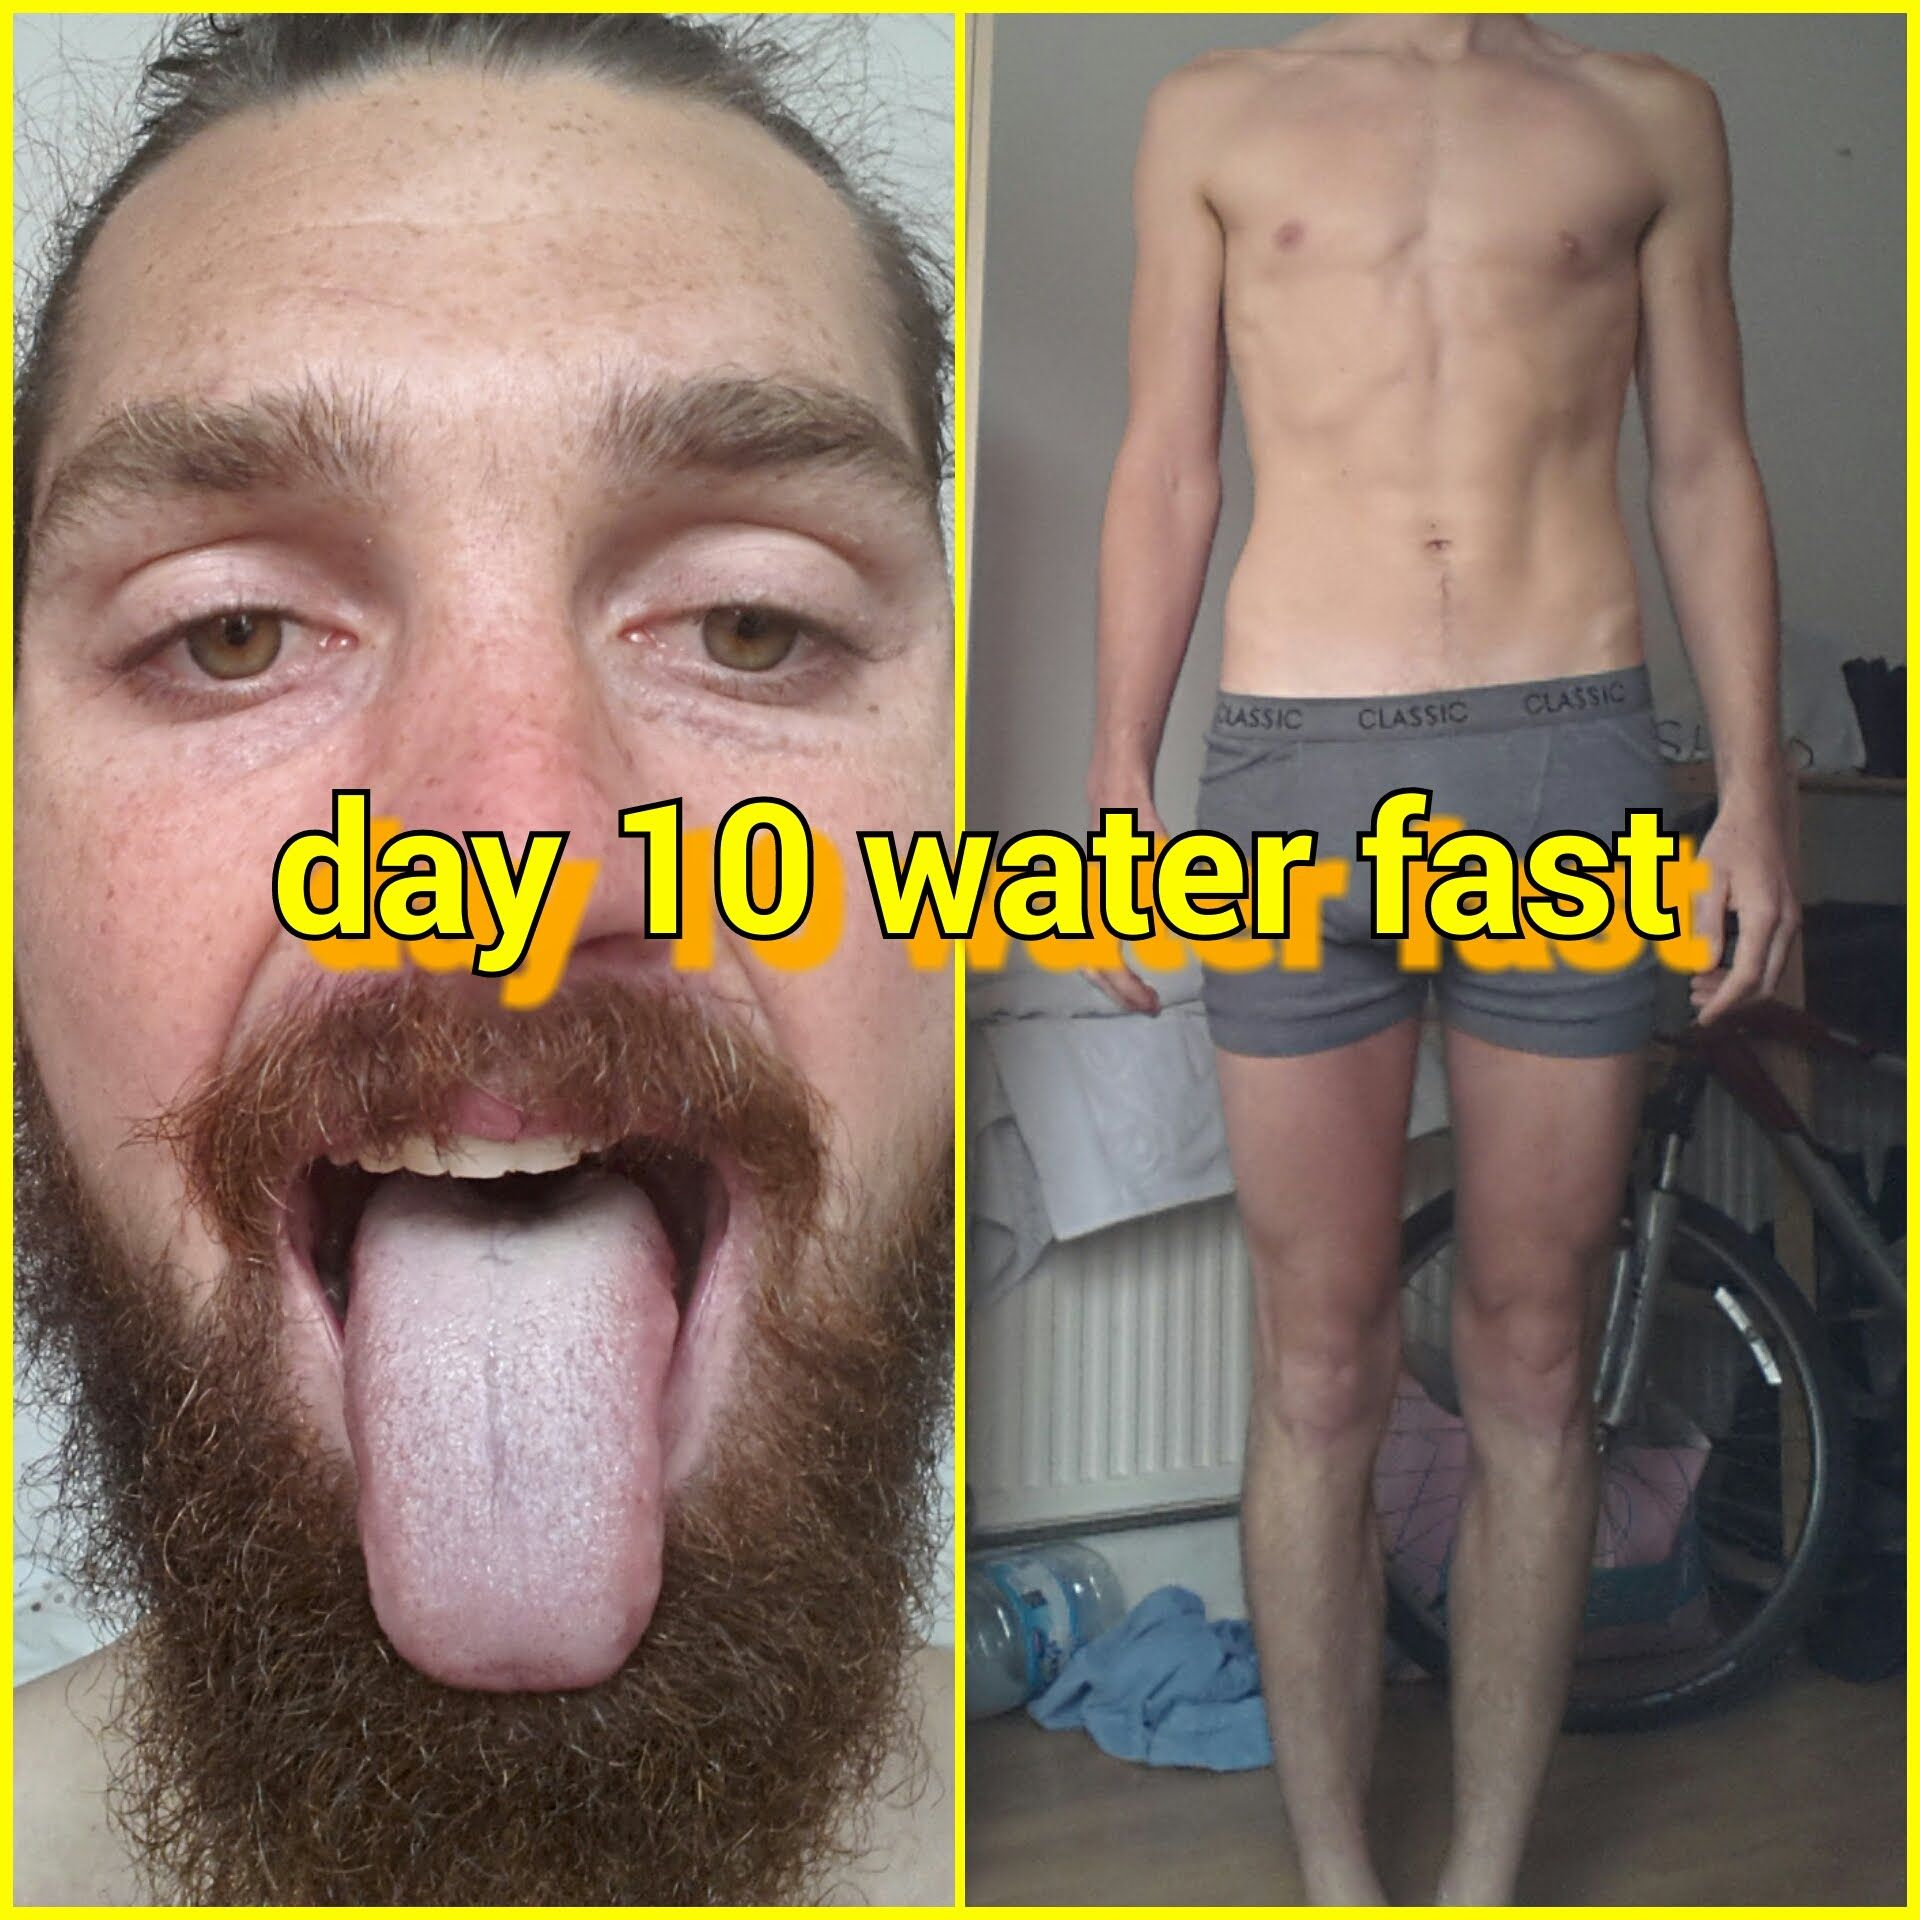 Water fasting for weight loss 5 day